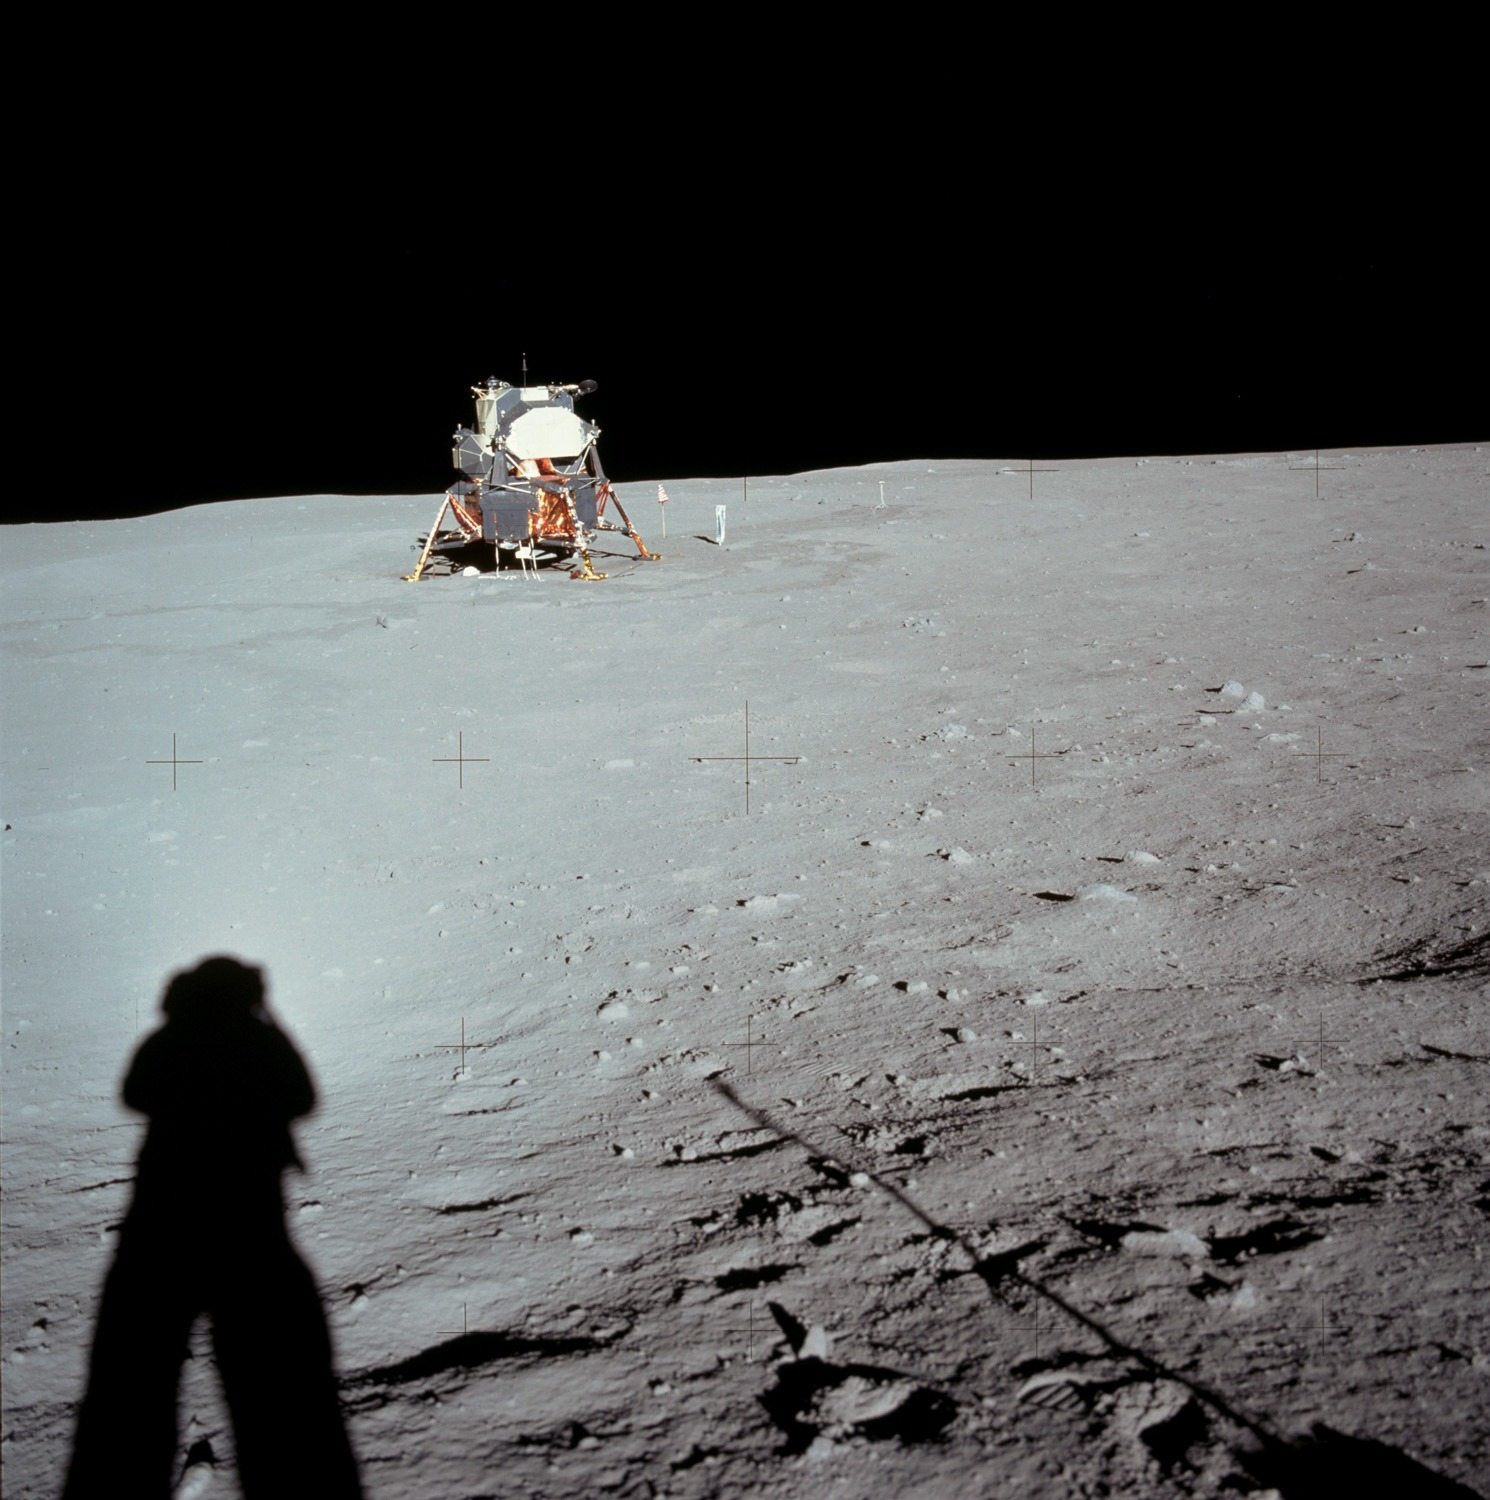 Armstrong runs 60 metres east of (behind) the lunar module to investigate Little West Crater and performs a partial panorama there. Credit: Neil Armstrong, NASA ID: AS11-40-5961